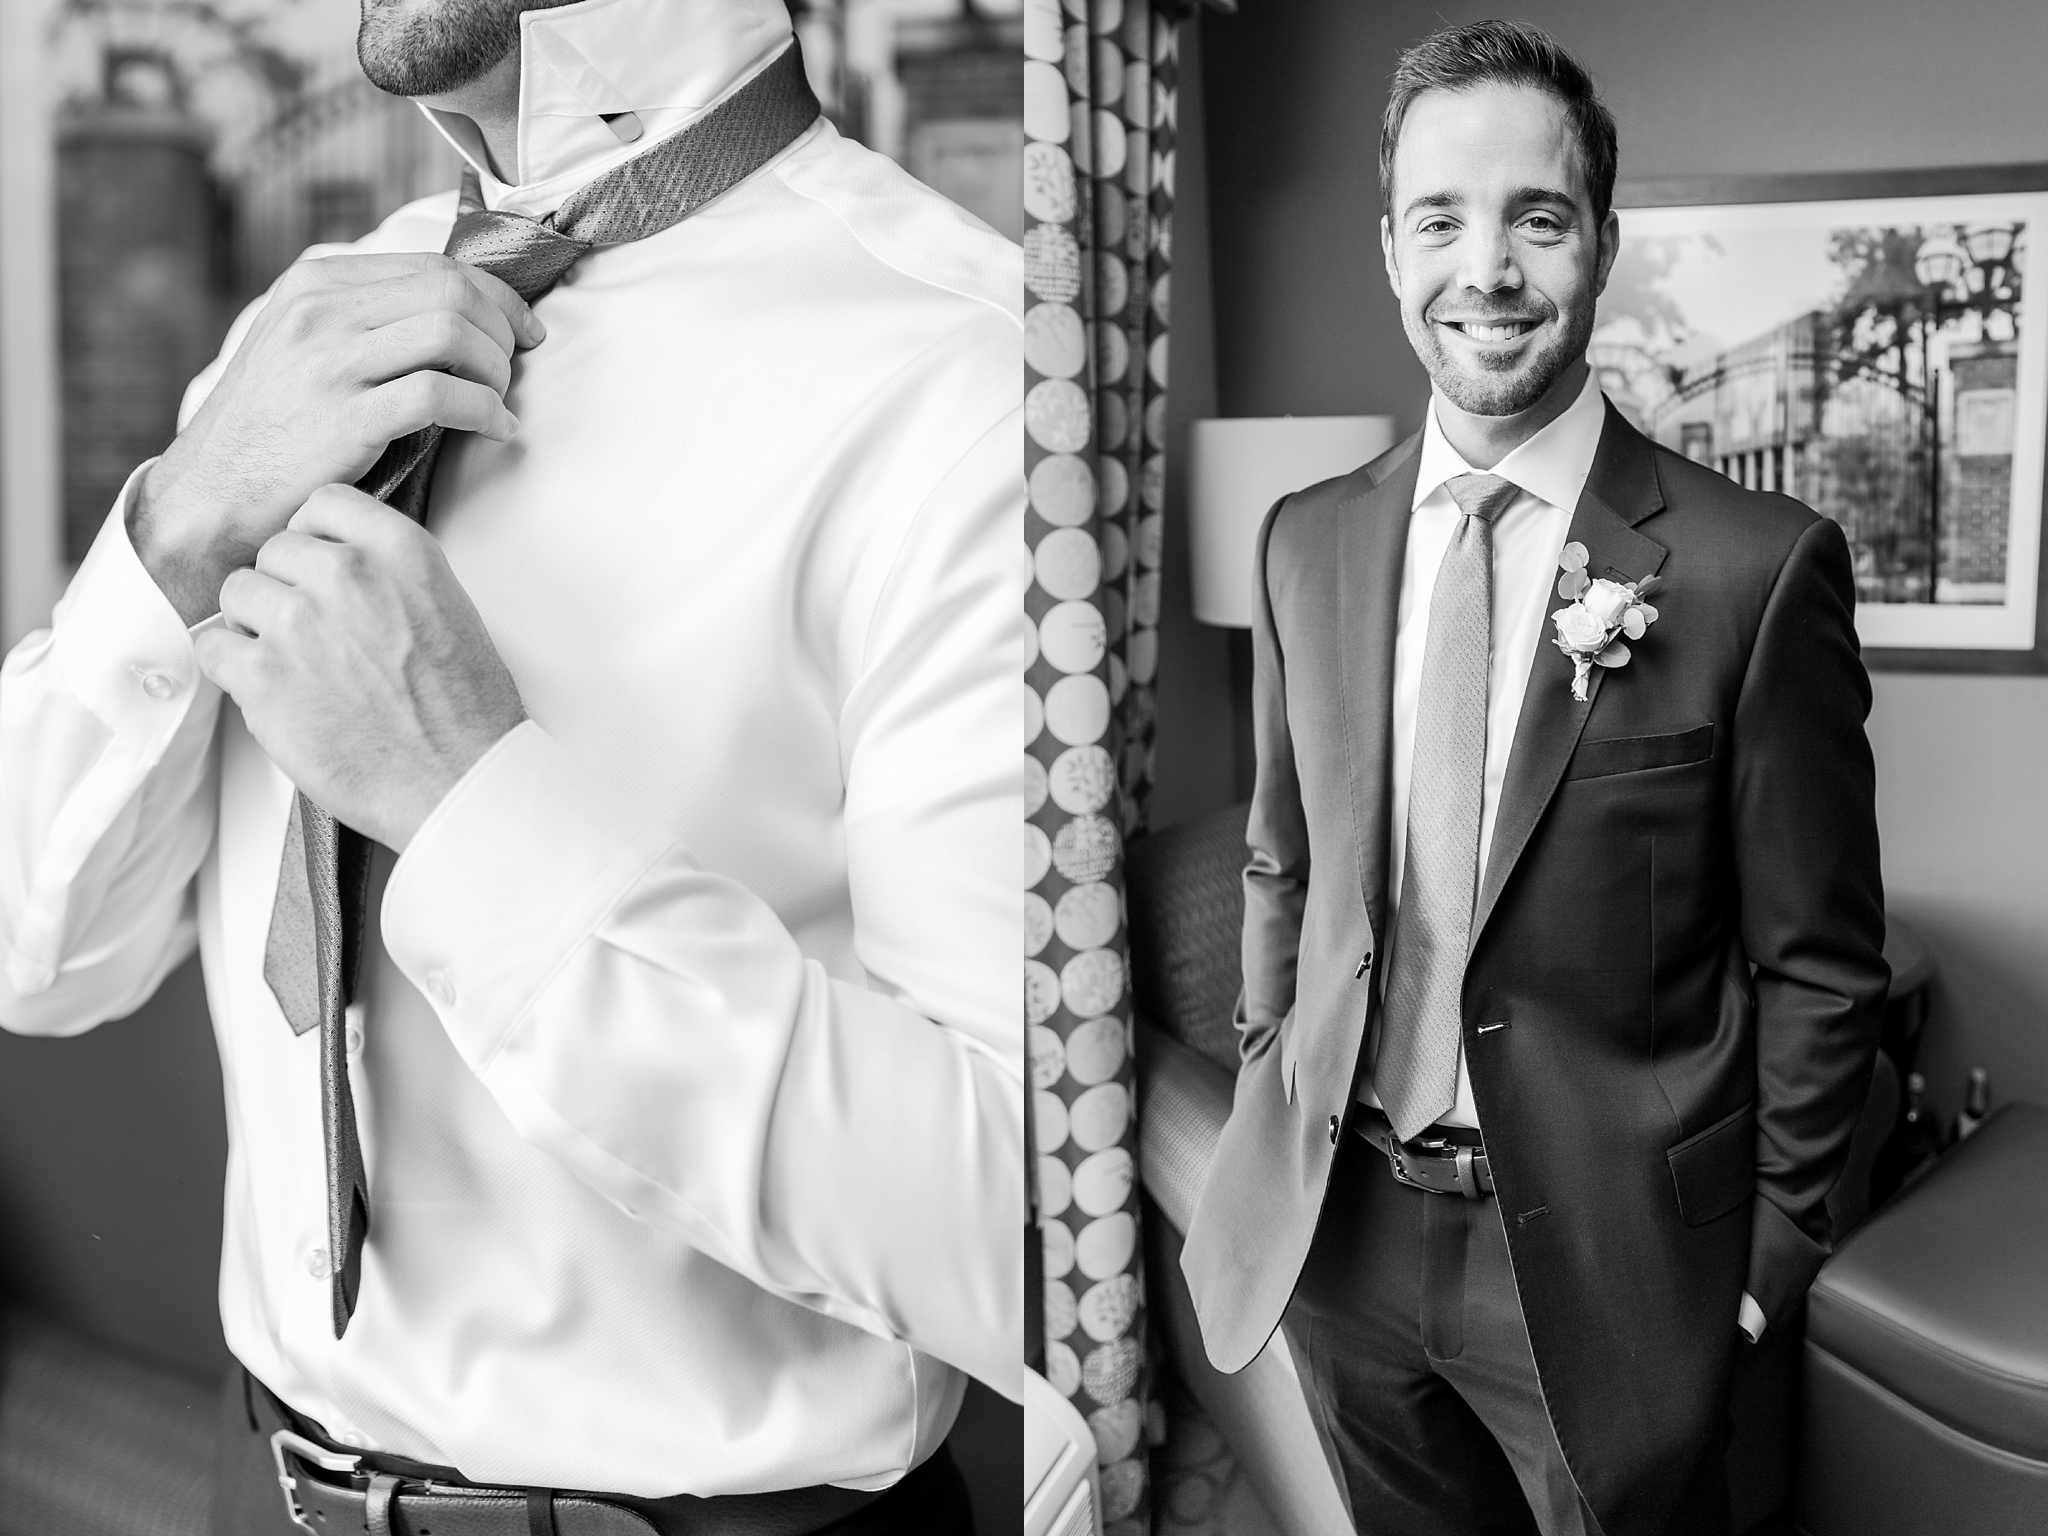 fun-candid-laid-back-wedding-photos-at-wellers-carriage-house-in-saline-michigan-and-at-the-eagle-crest-golf-resort-by-courtney-carolyn-photography_0009.jpg